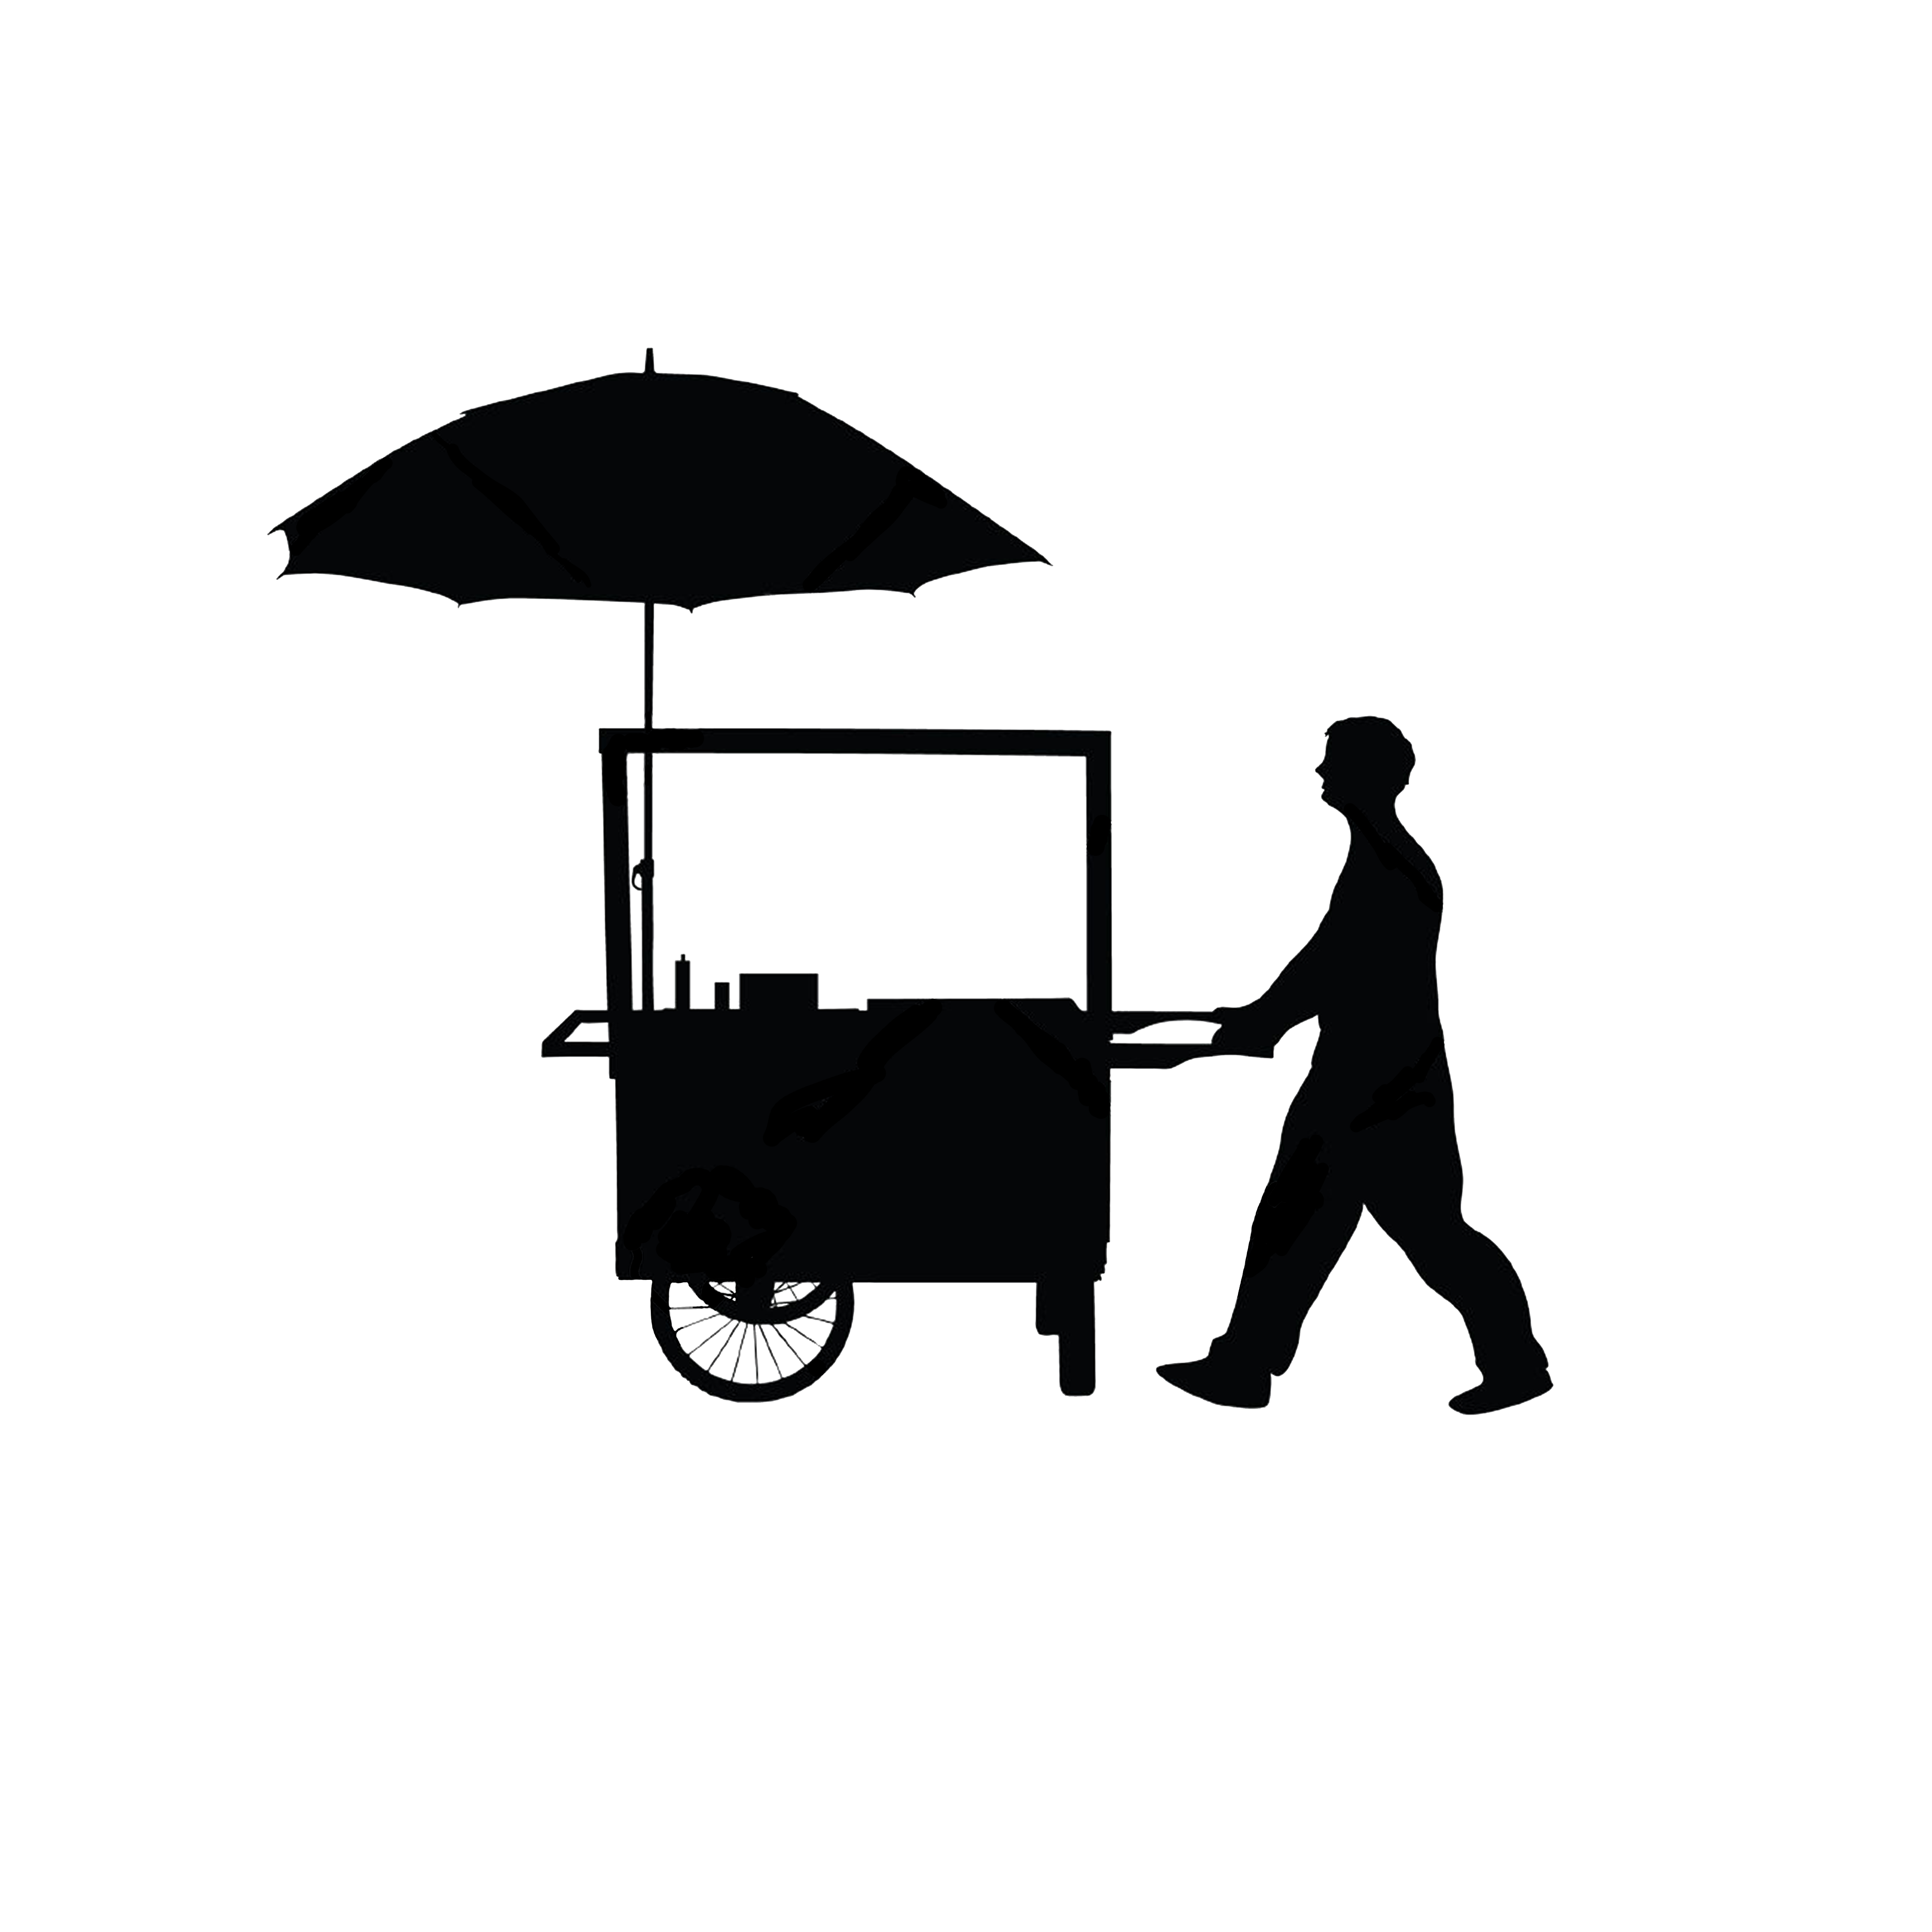 Trolley vector kart. Vendor with cart architecture